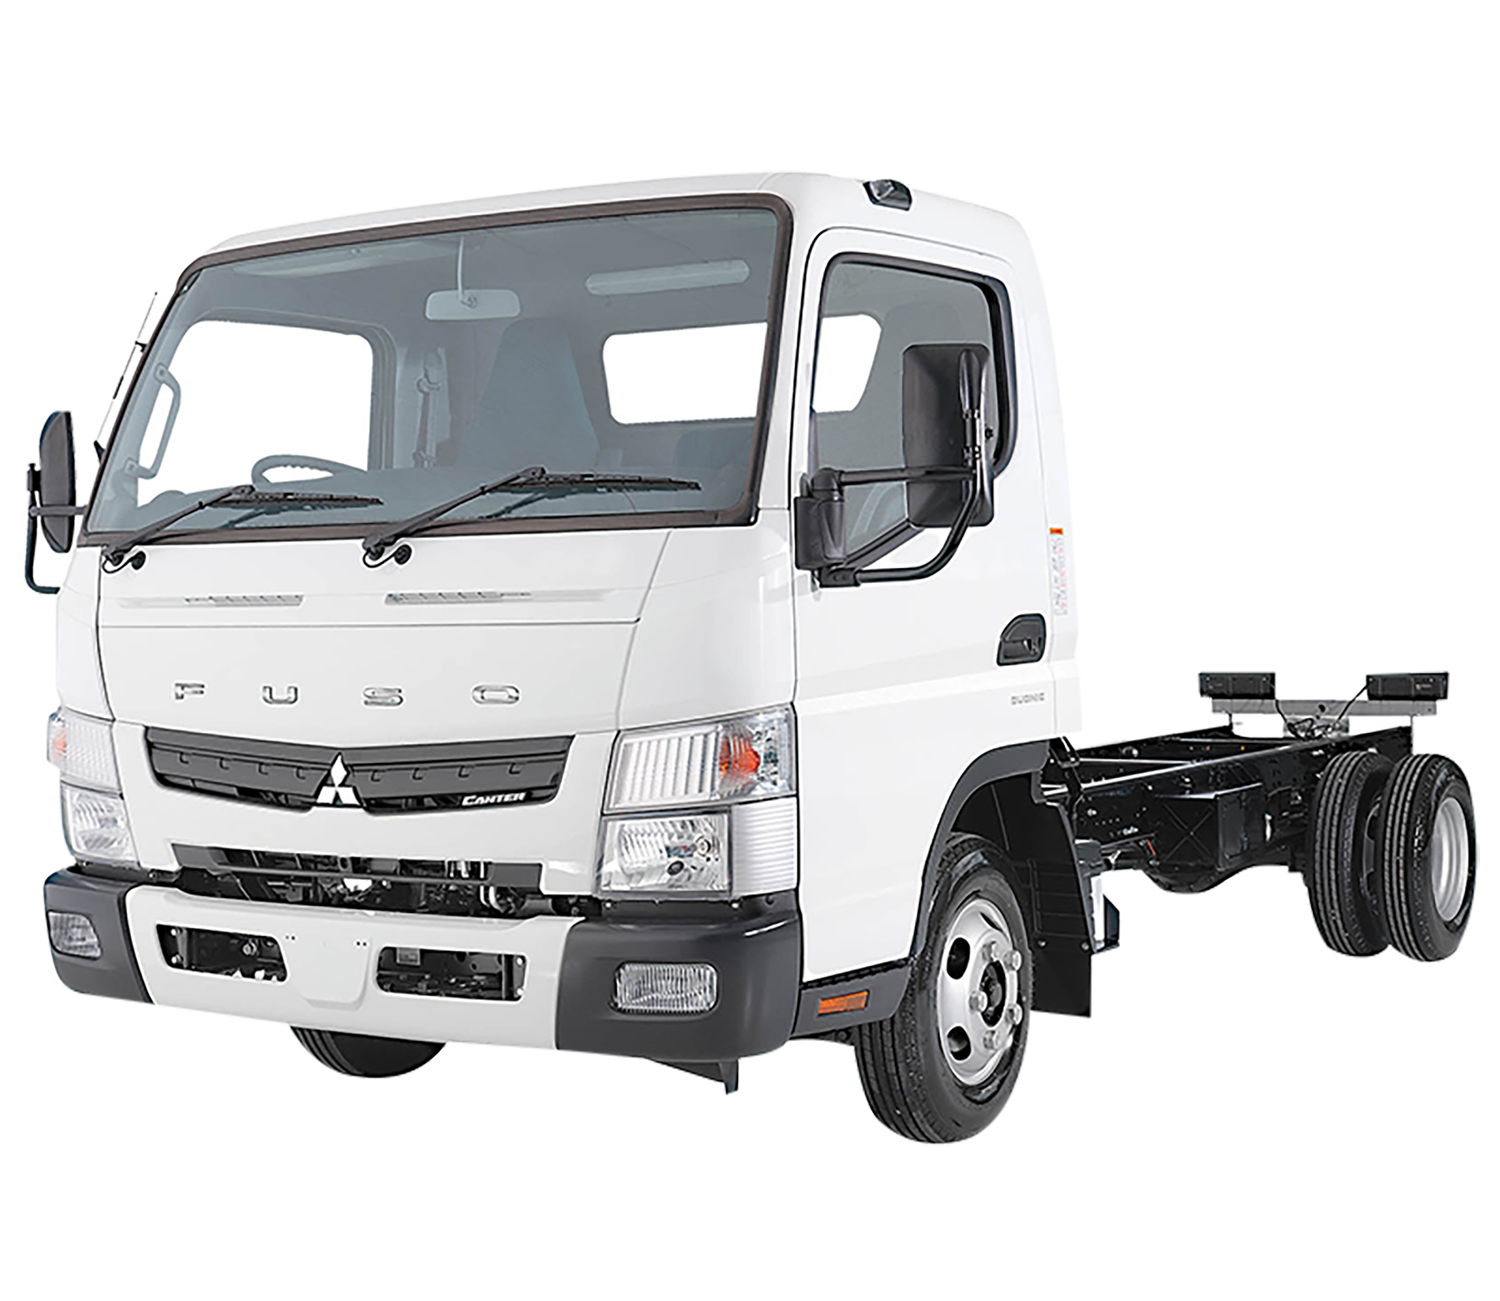 fuso canter small light trucks for sale fuso nz. Black Bedroom Furniture Sets. Home Design Ideas